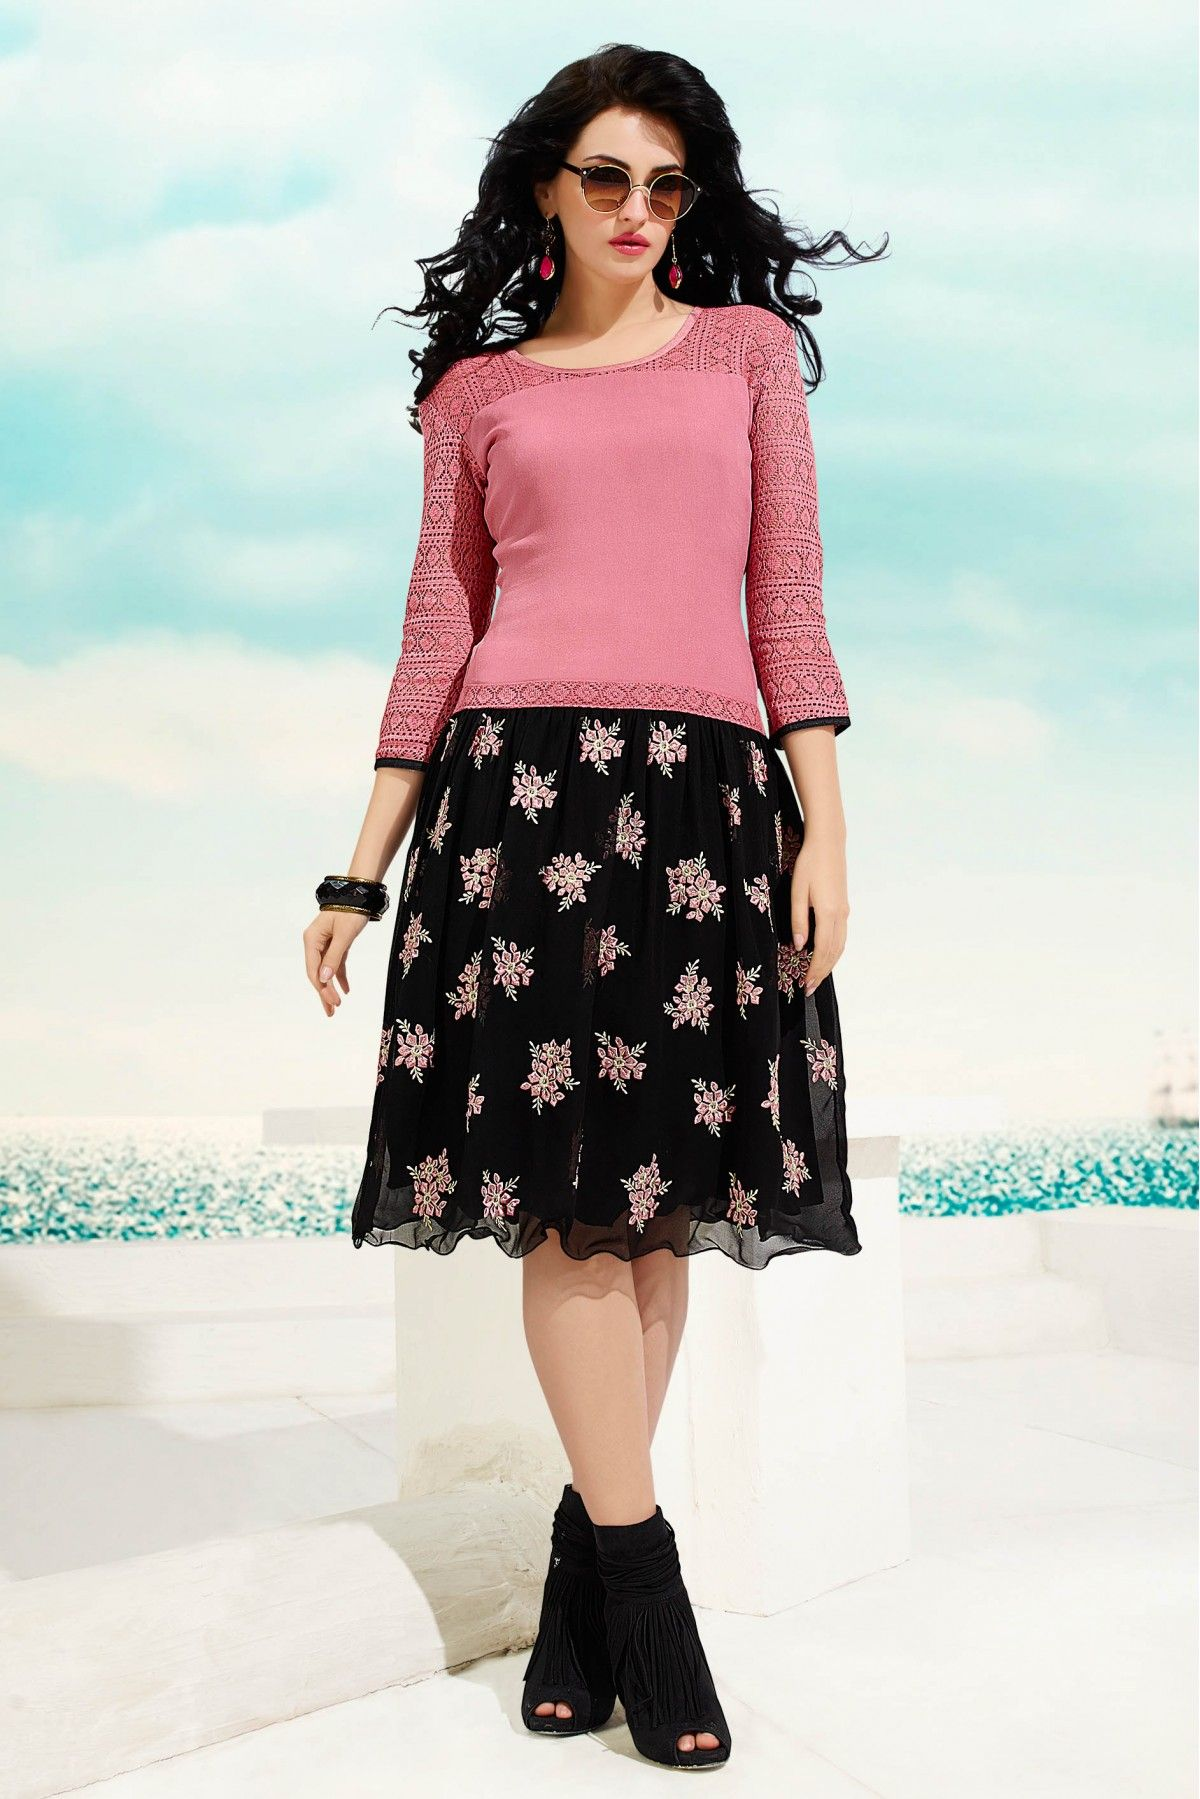 591389c444 Georgette Party Wear Kurti in Pink and Black Colour.It is crafted with Embroidery  Design